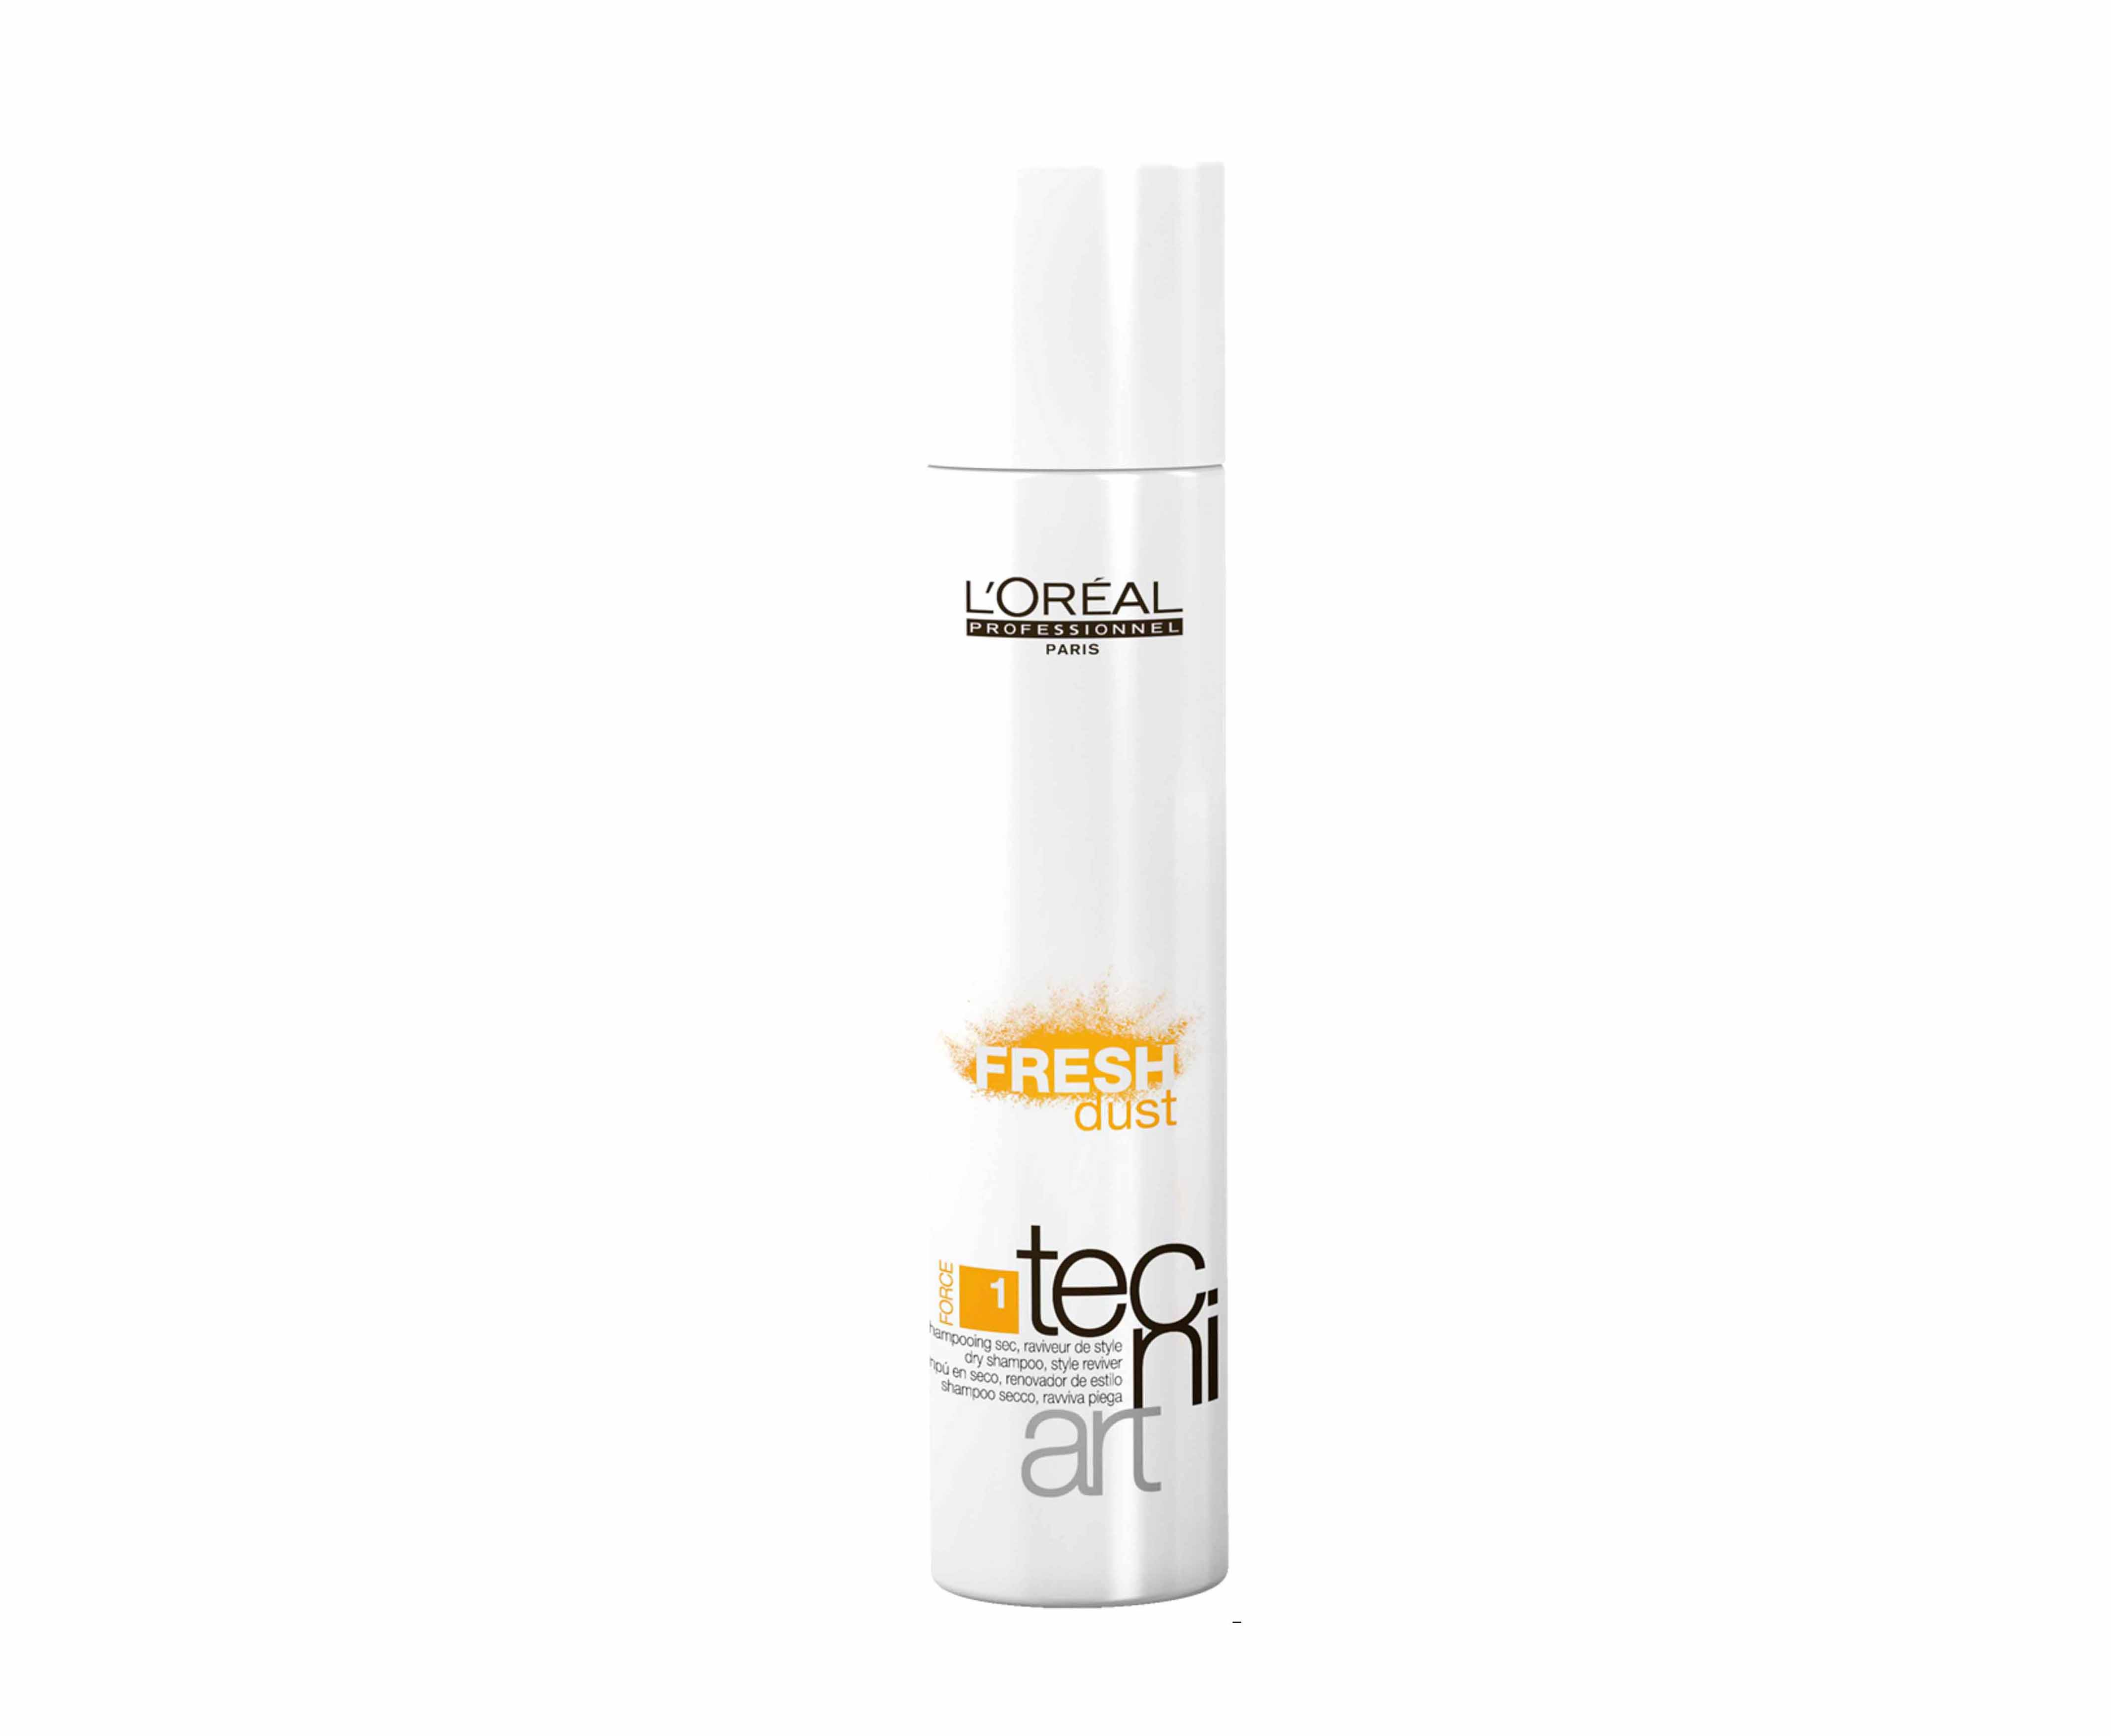 L'Oreal Professionnel Techni Art Fresh DustL'Oreal Professionnel Techni Art Fresh Dust